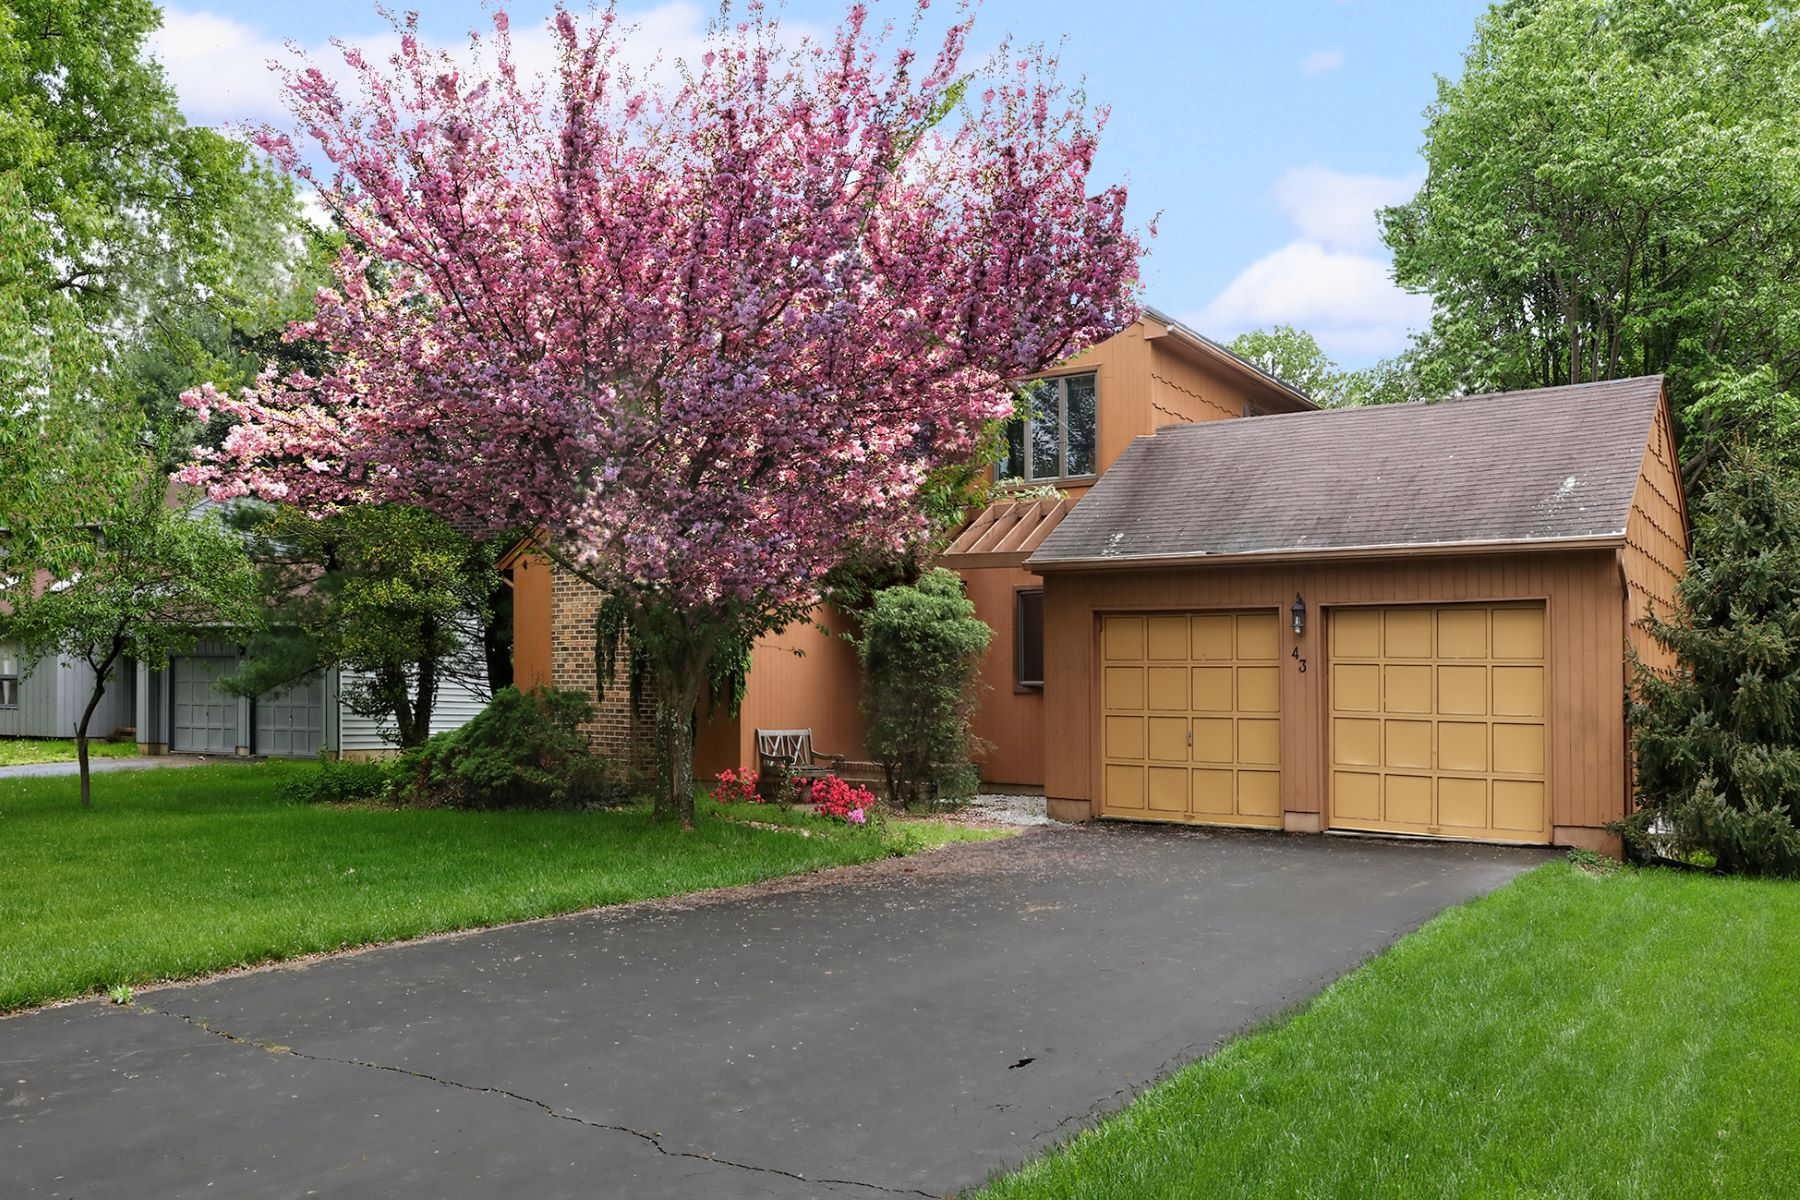 Flowering Trees Surround Modern Lawrenceville Home 43 Laurel Wood Drive Lawrenceville, New Jersey 08648 États-Unis